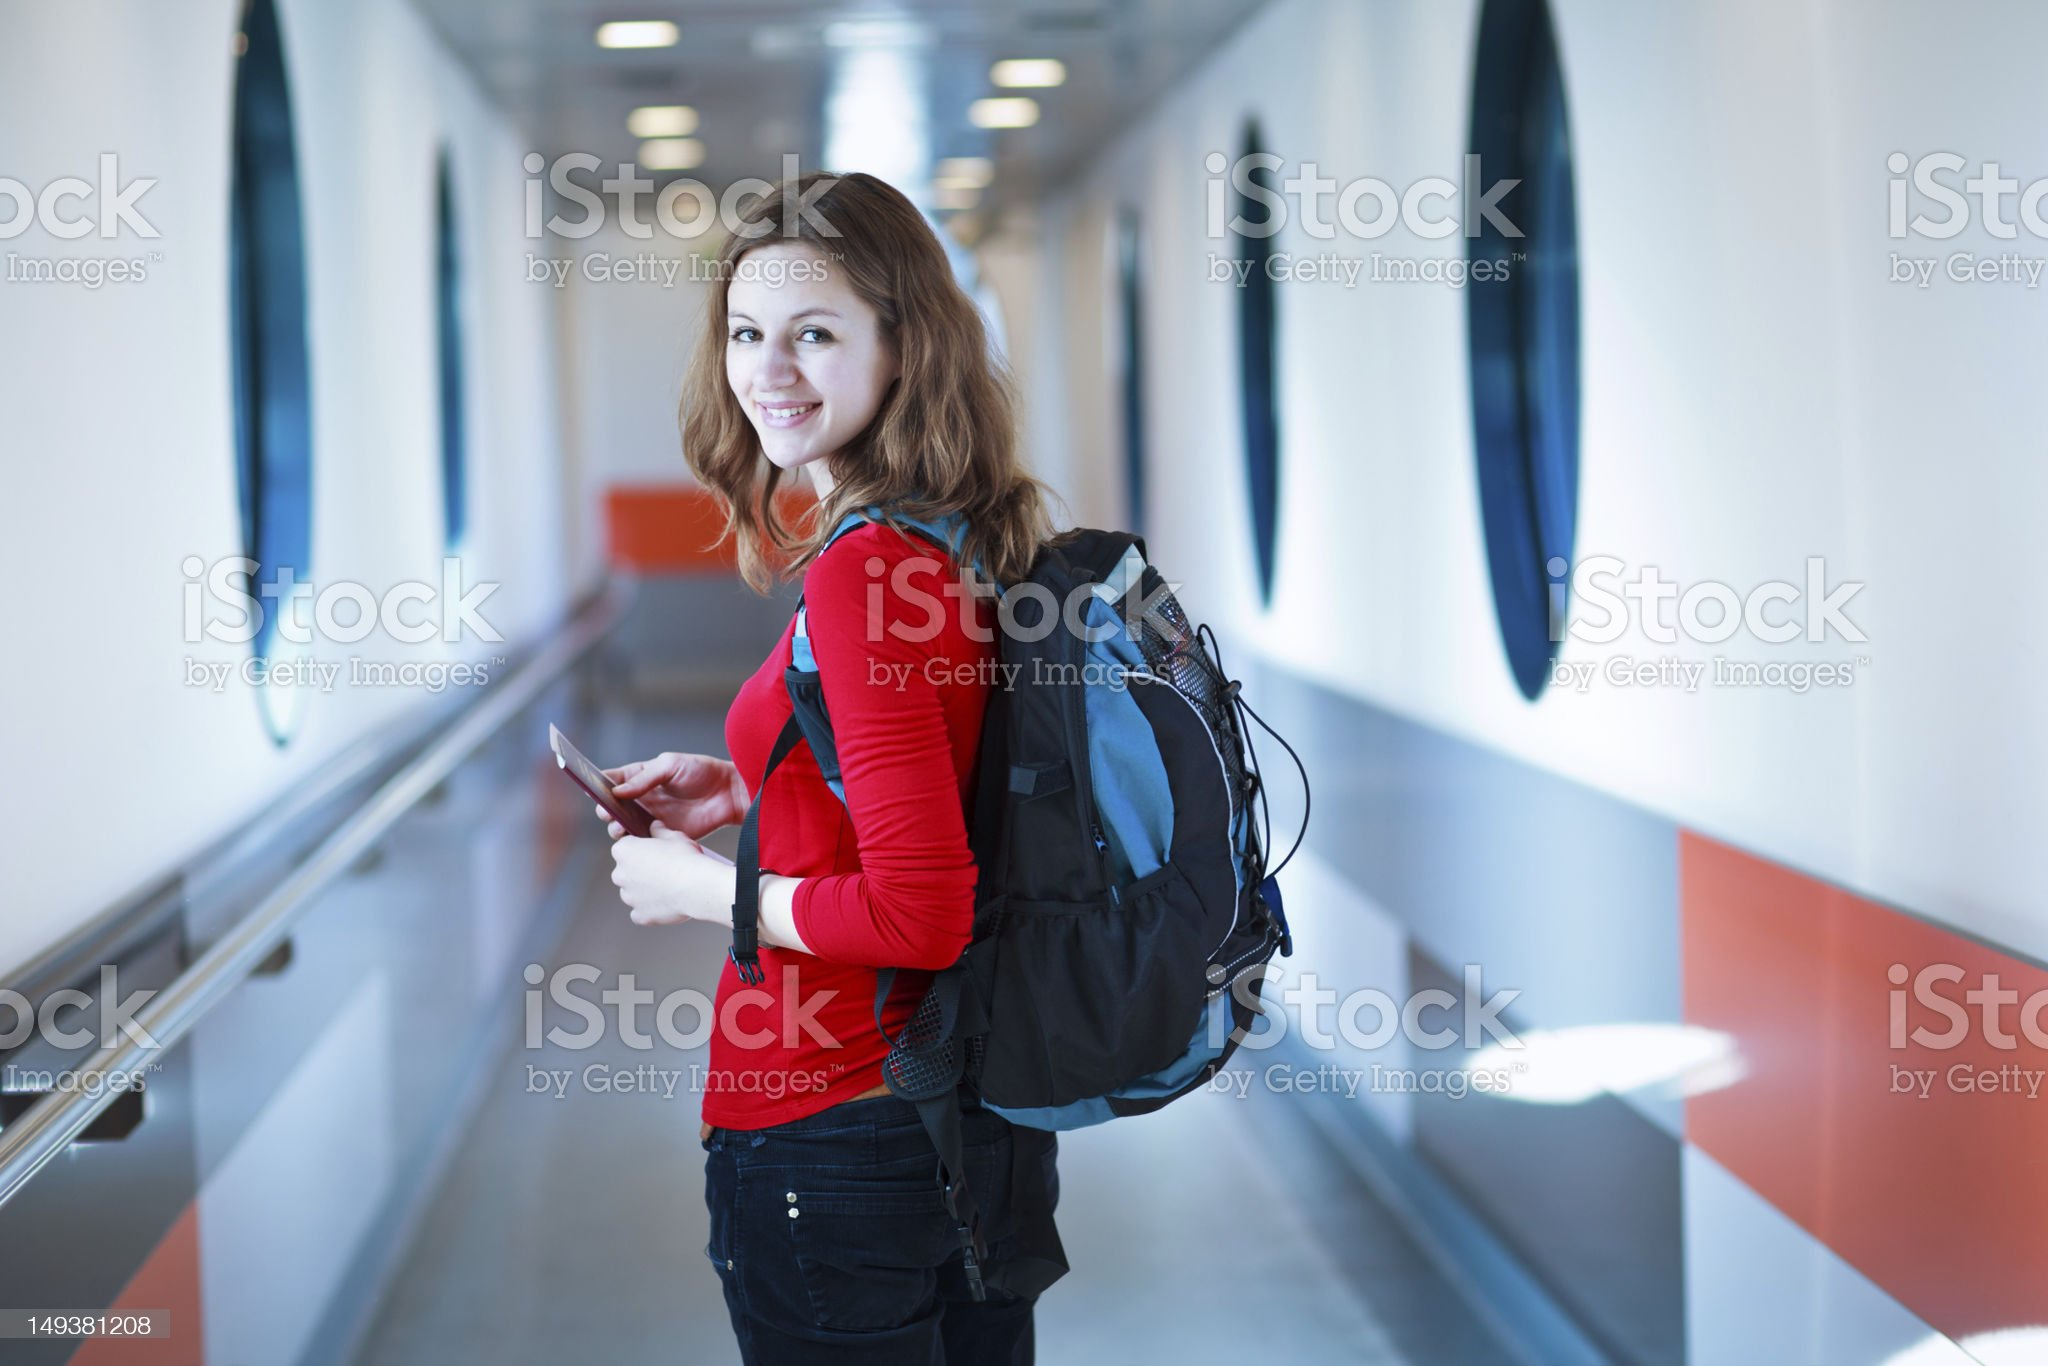 Woman in red shirt with book bag boarding a flight royalty-free stock photo